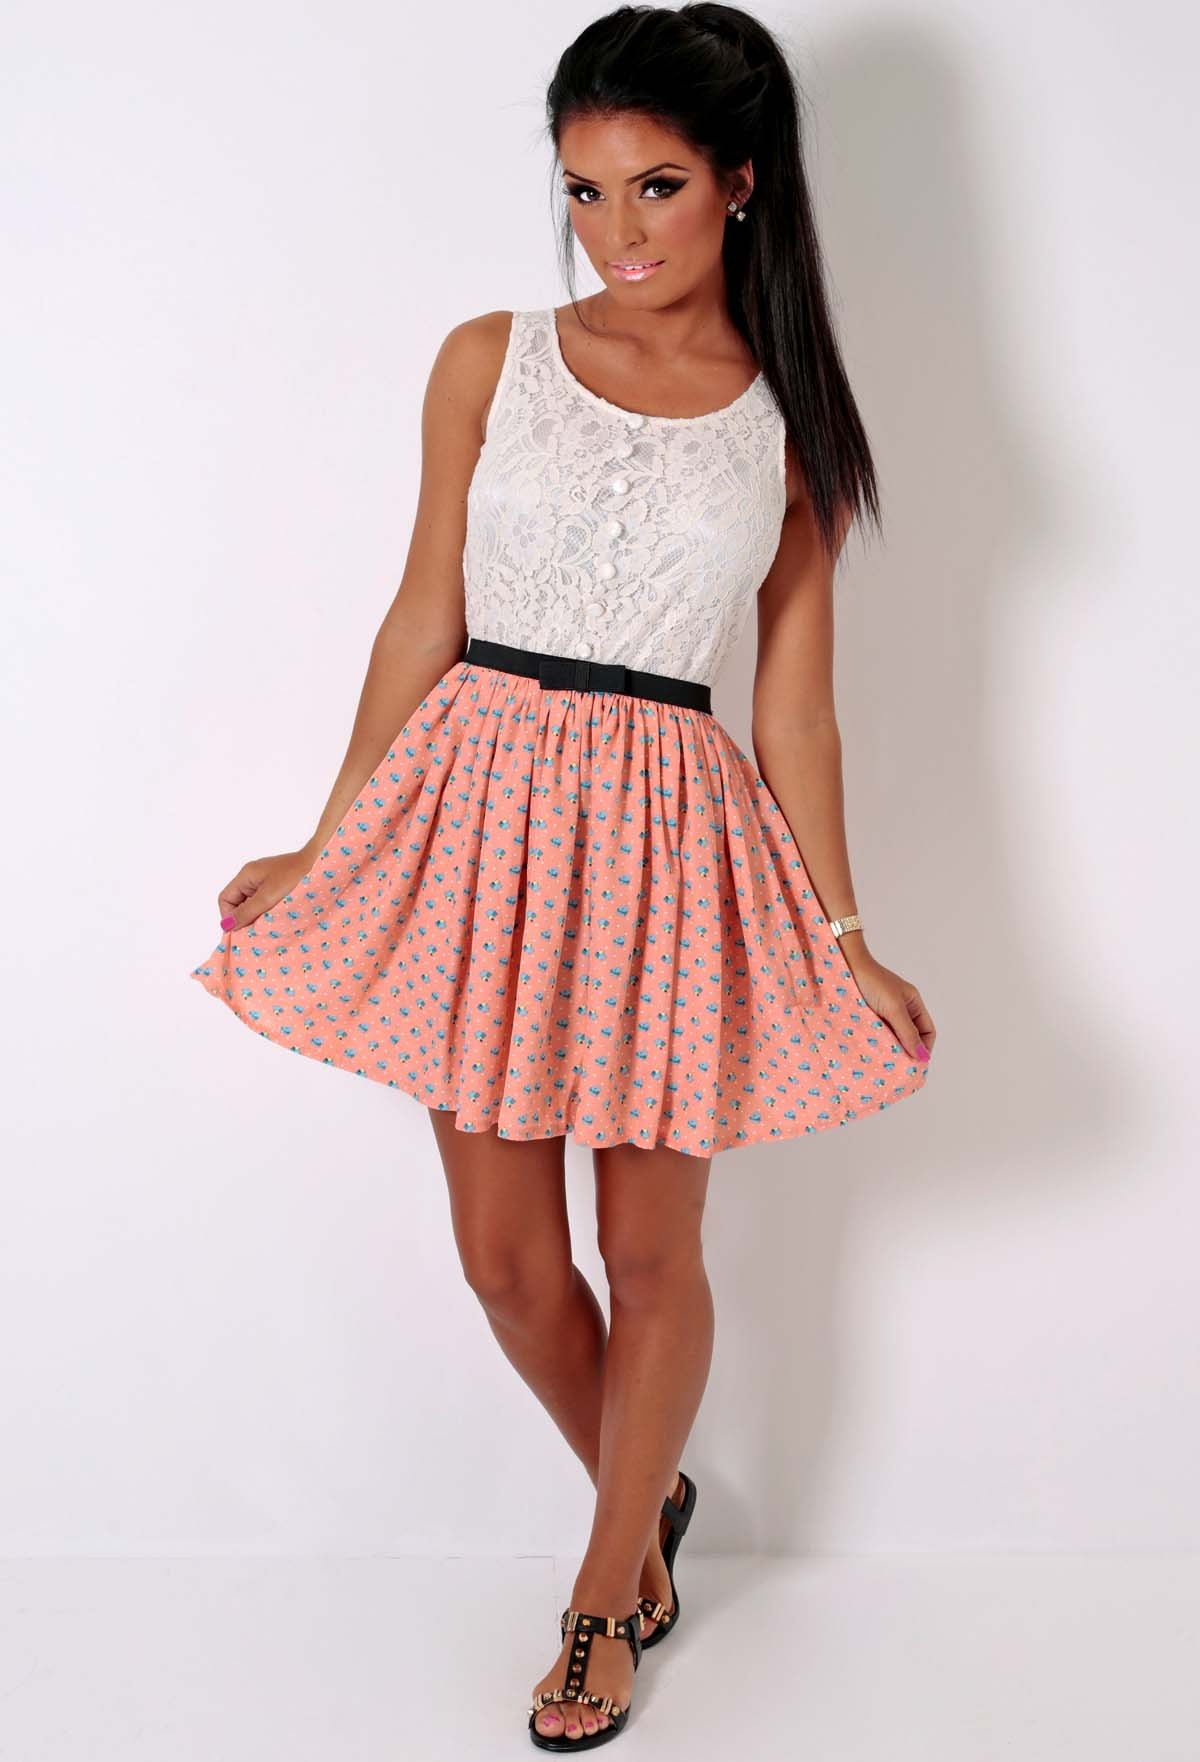 Peach and Cream Lace Floral Skater Dress | Pink Boutique